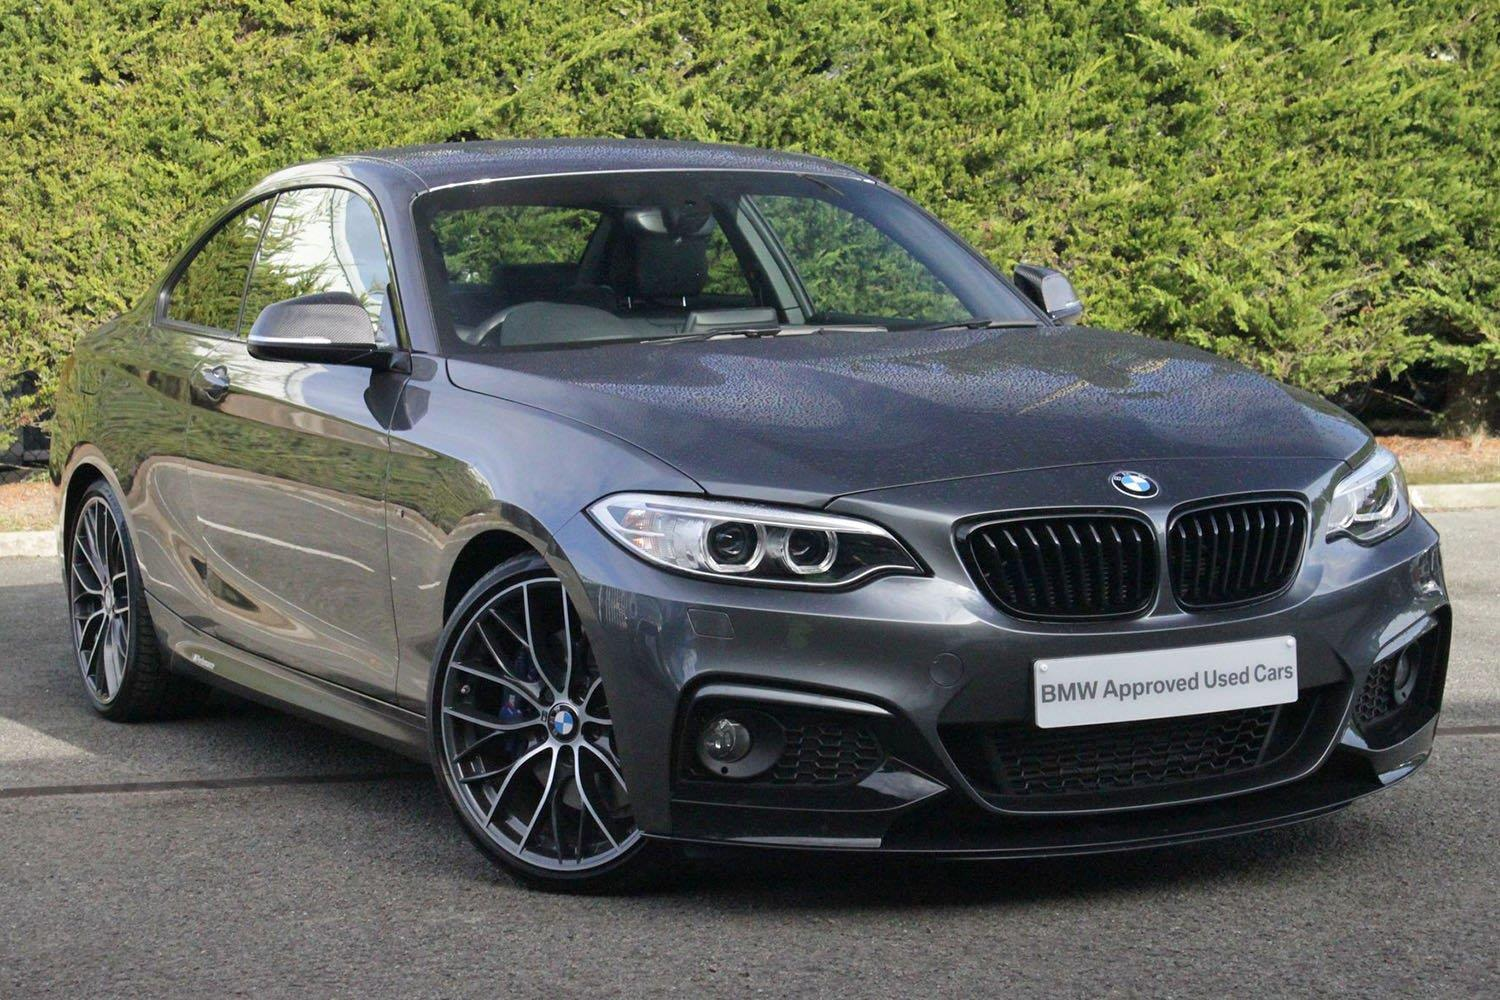 BMW 2 Series Coupé CX16RVF - Image 8